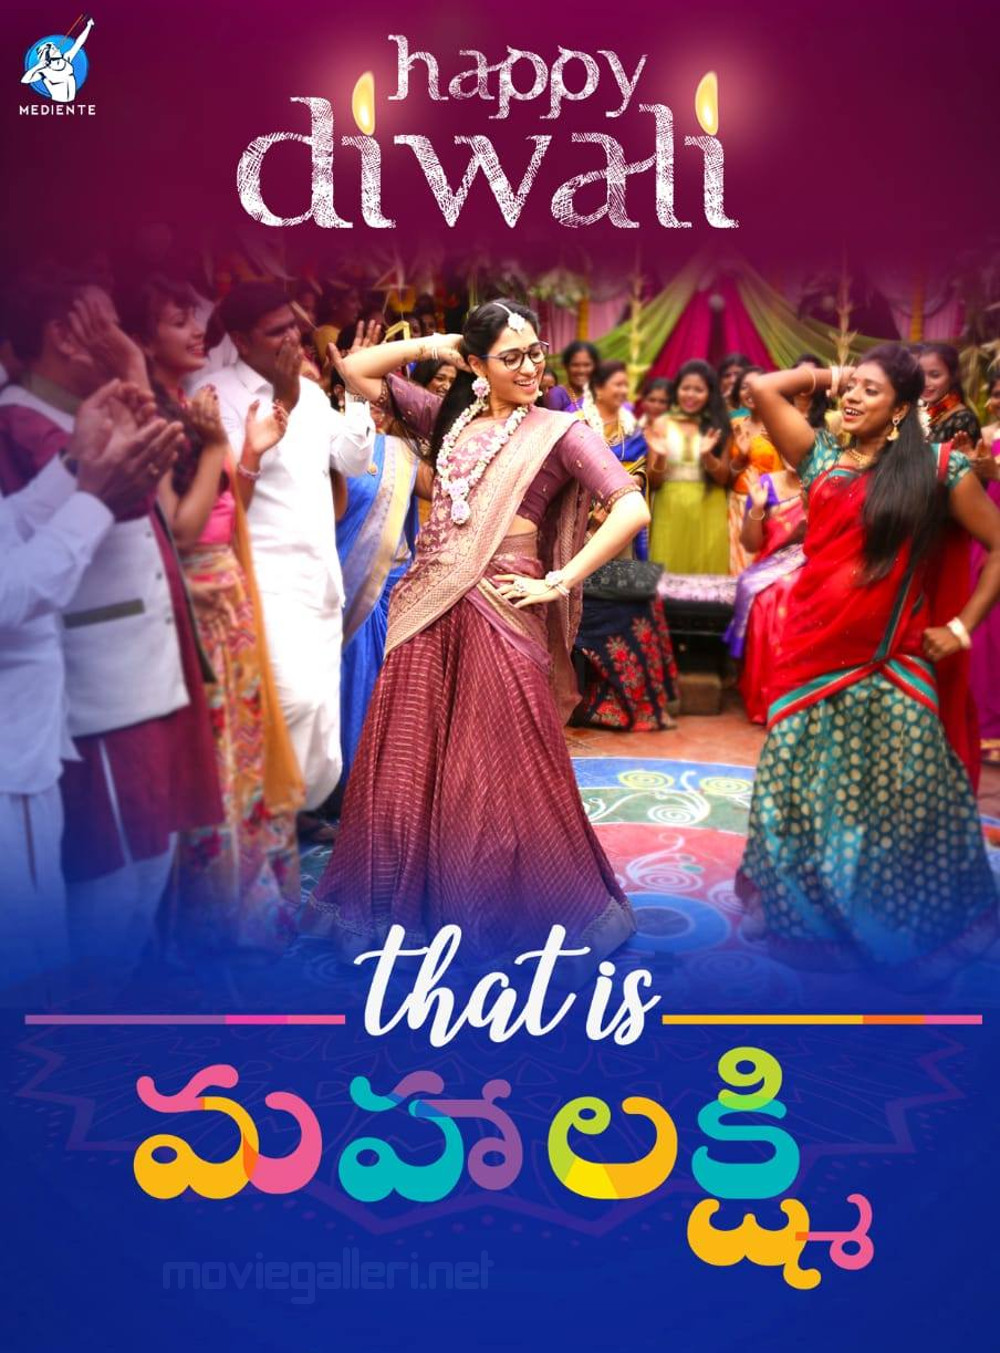 Actress Tamannaah That is Mahalakshmi Movie Diwali Wishes Poster HD